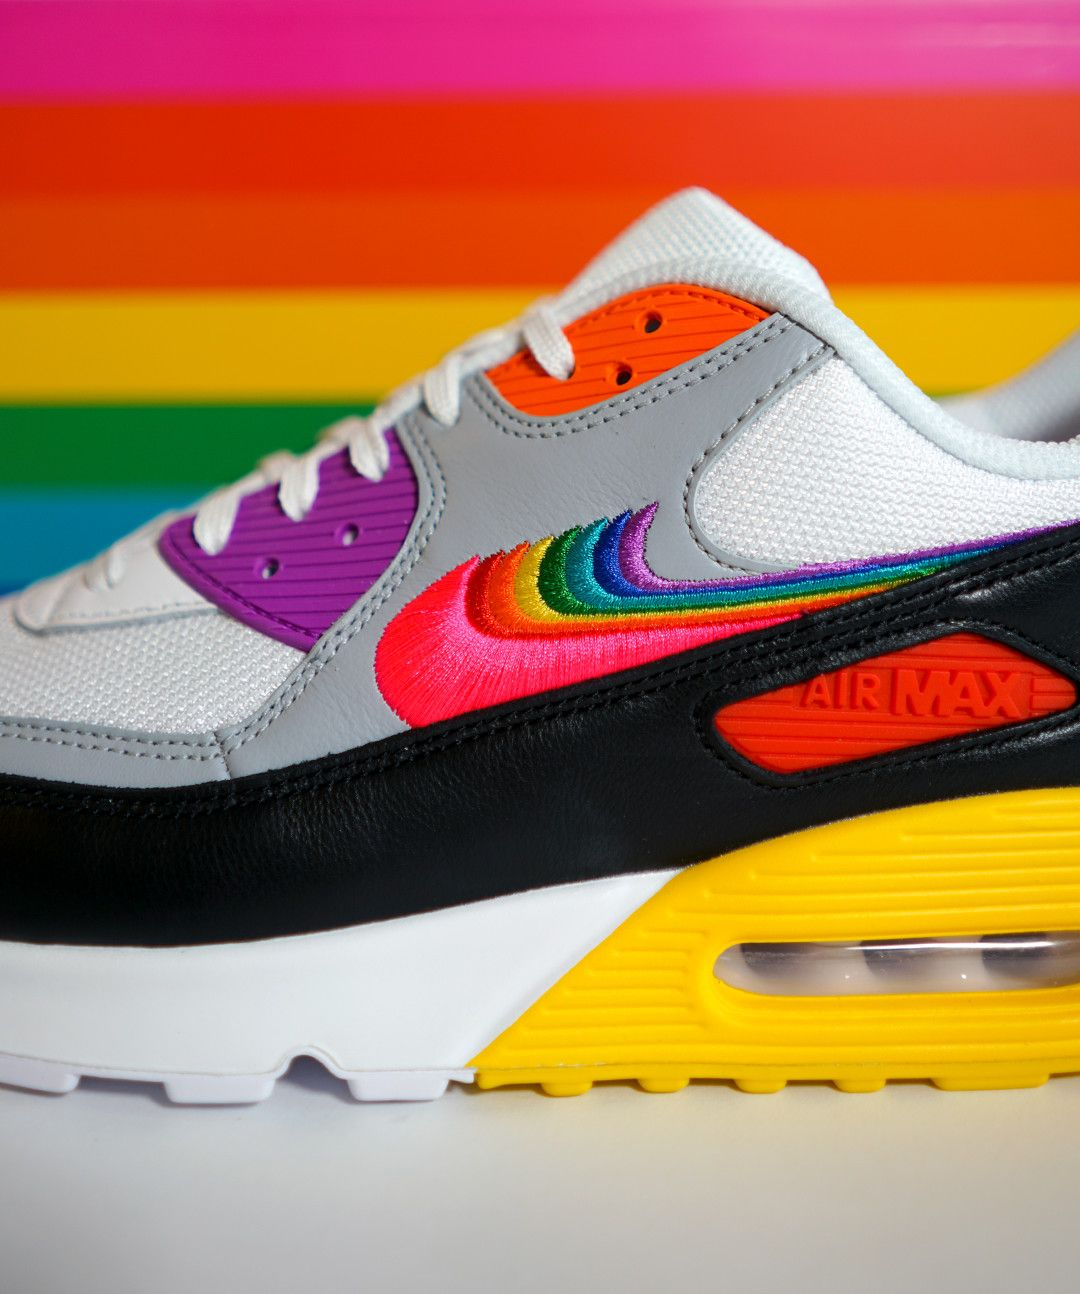 Nike BETRUE Air Max 90 and Tailwind 79 Sneakers The Story